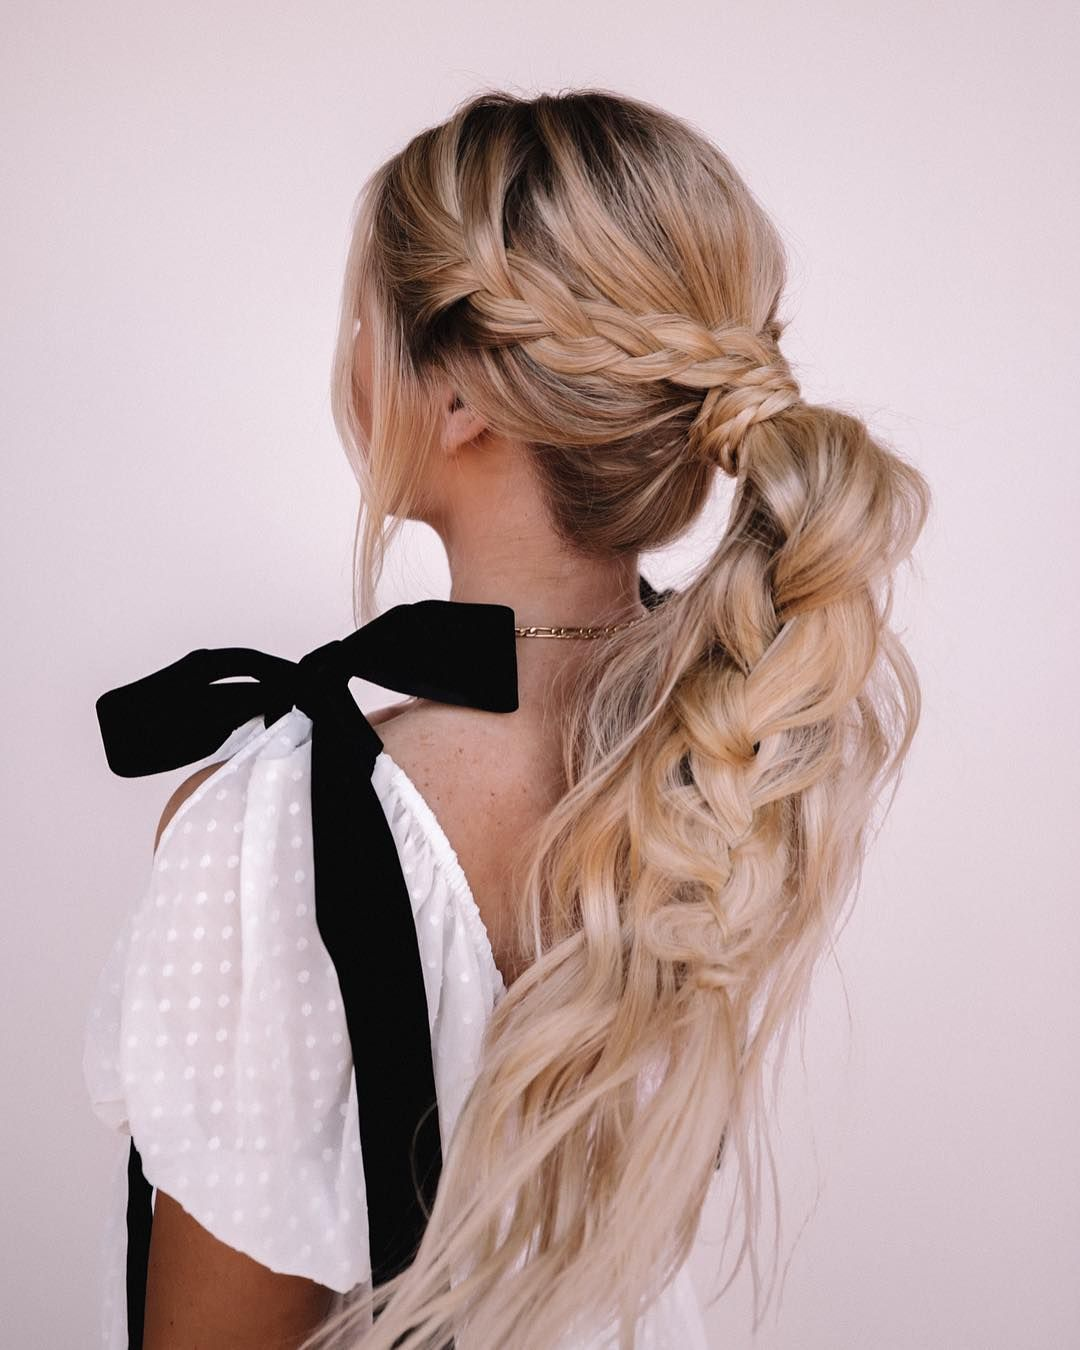 Try this braided pony hair tutorial. The key to this style is to really pull out the braid in the ponytail to make it bigger. We used the Classic set here for extra length and added the one clips around the top for the braids. #bfbhair #bfbtutorials #braids #extensions